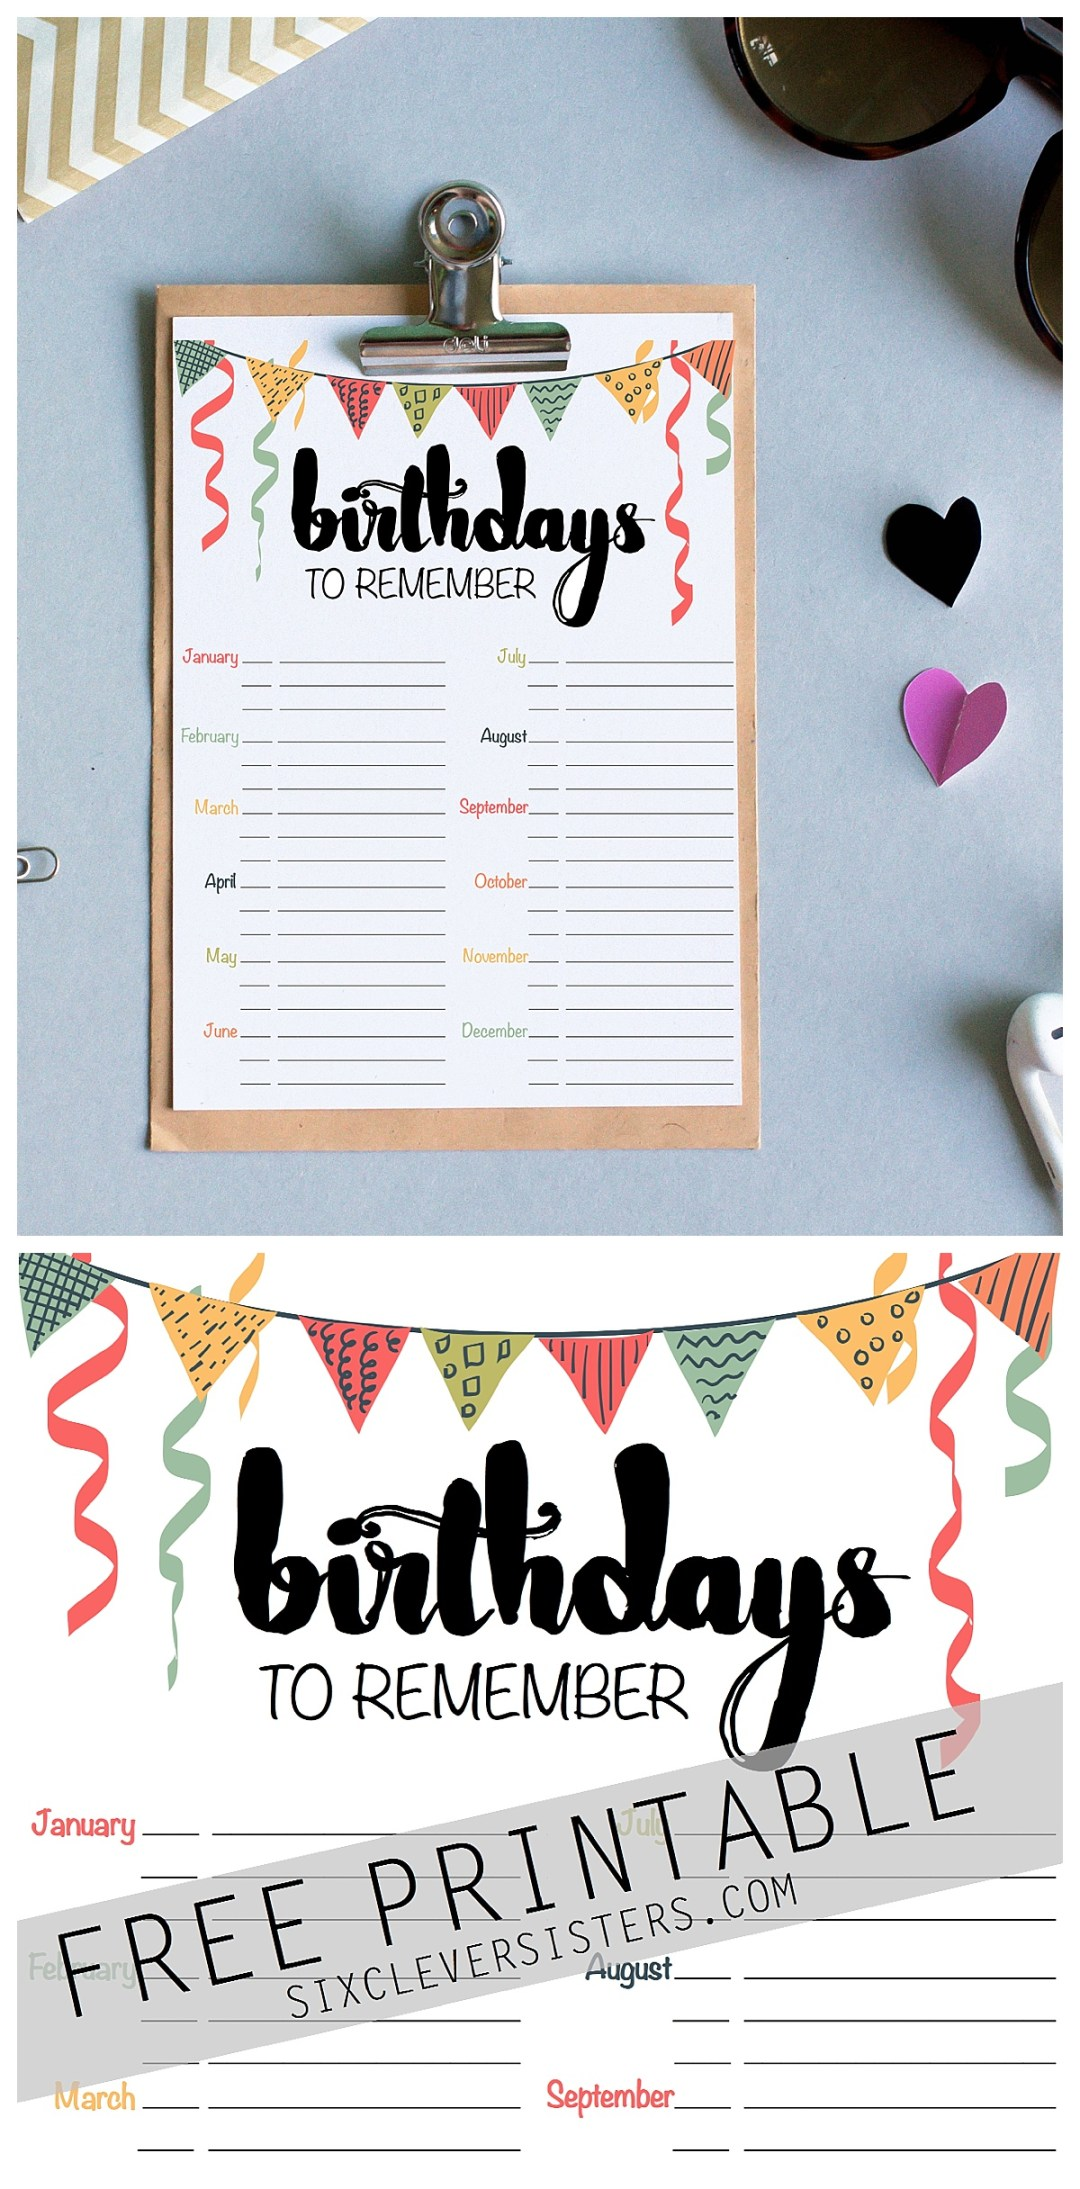 birthday free printable schedule reminder